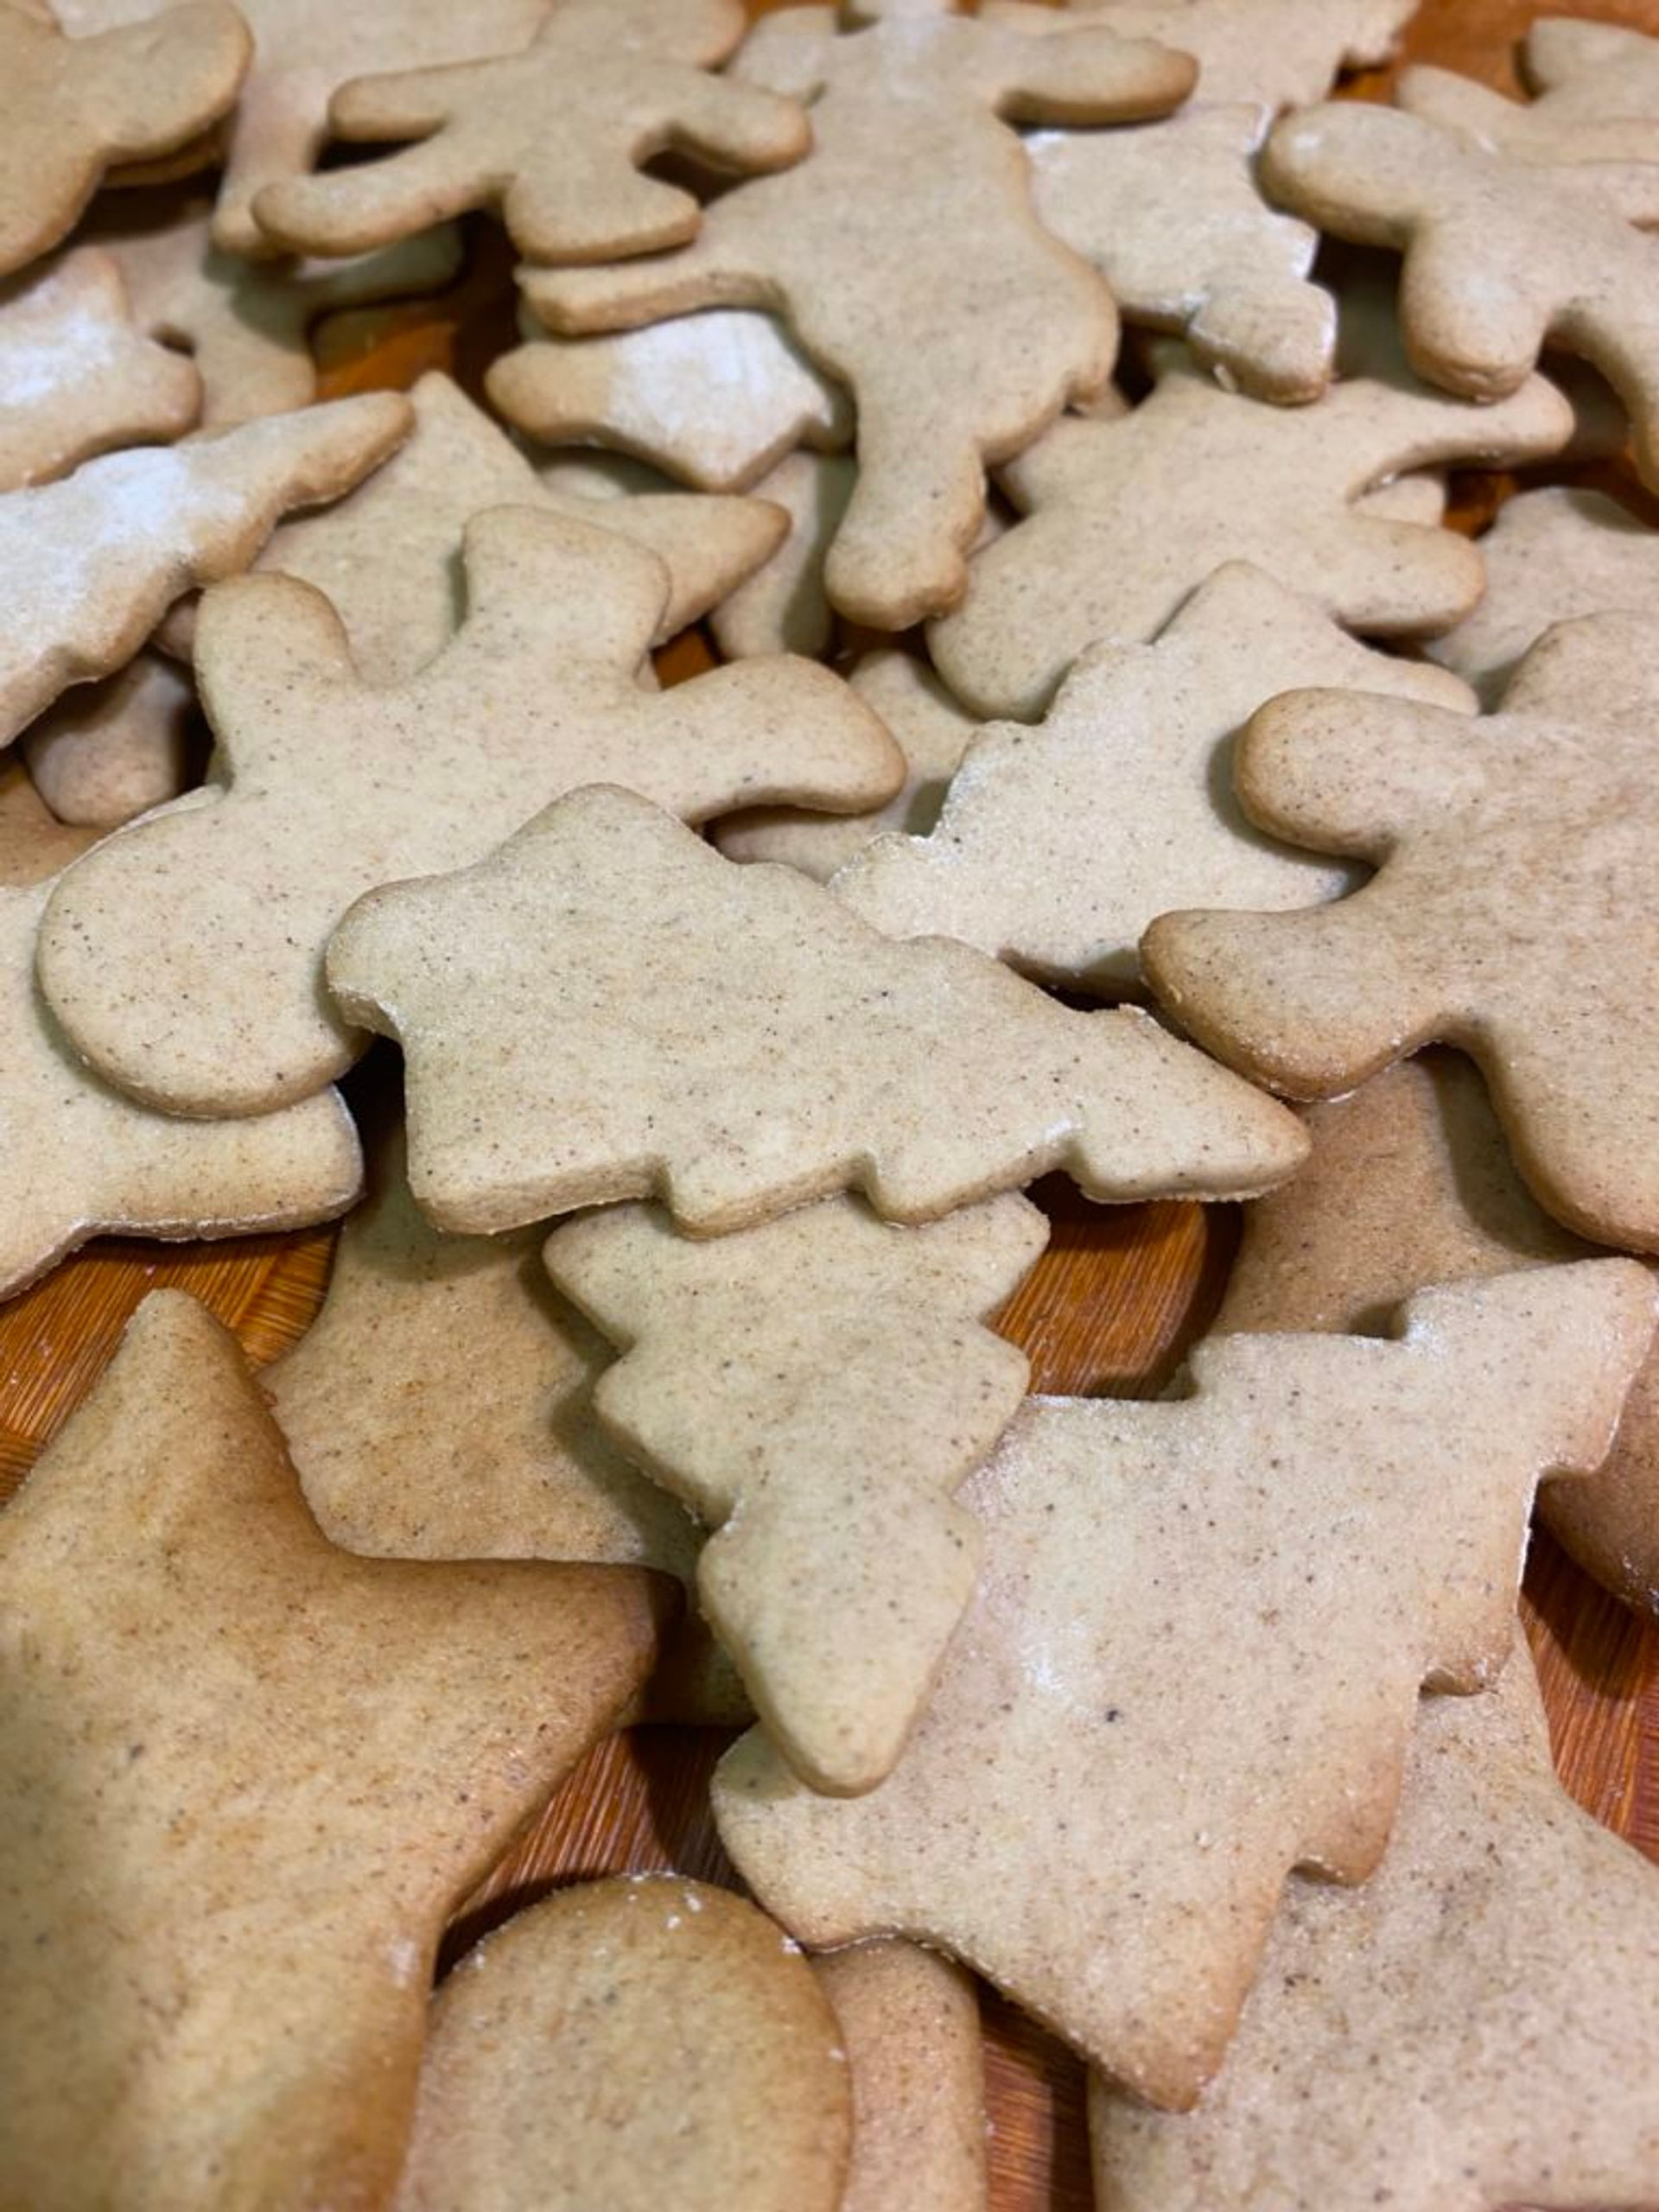 A tabletop covered with freshly baked gingerbread cookies in the shape of people and Christmas trees.